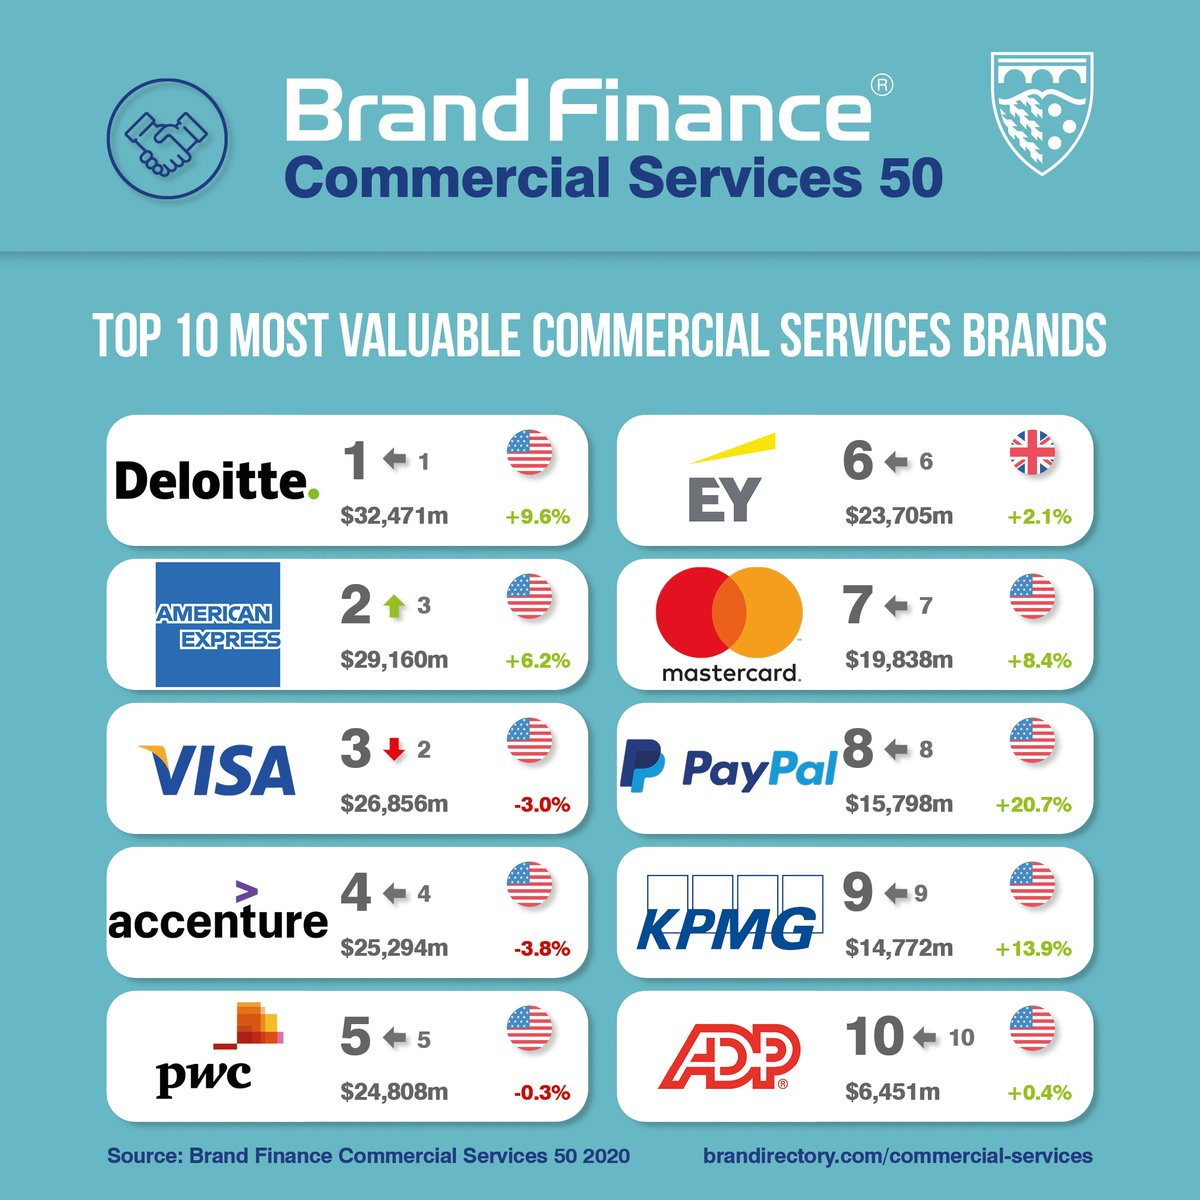 Most valuable Commercial Services #brands revealed! -Sector moderately impacted by #COVID19, brands could lose up to 10% of value -@Deloitte is world's most valuable & strongest commercial services brand  -@AmericanExpress & @Visa claim 2nd & 3rd   REPORT: https://t.co/iisYfubJ1I https://t.co/GzeGUdUnFW